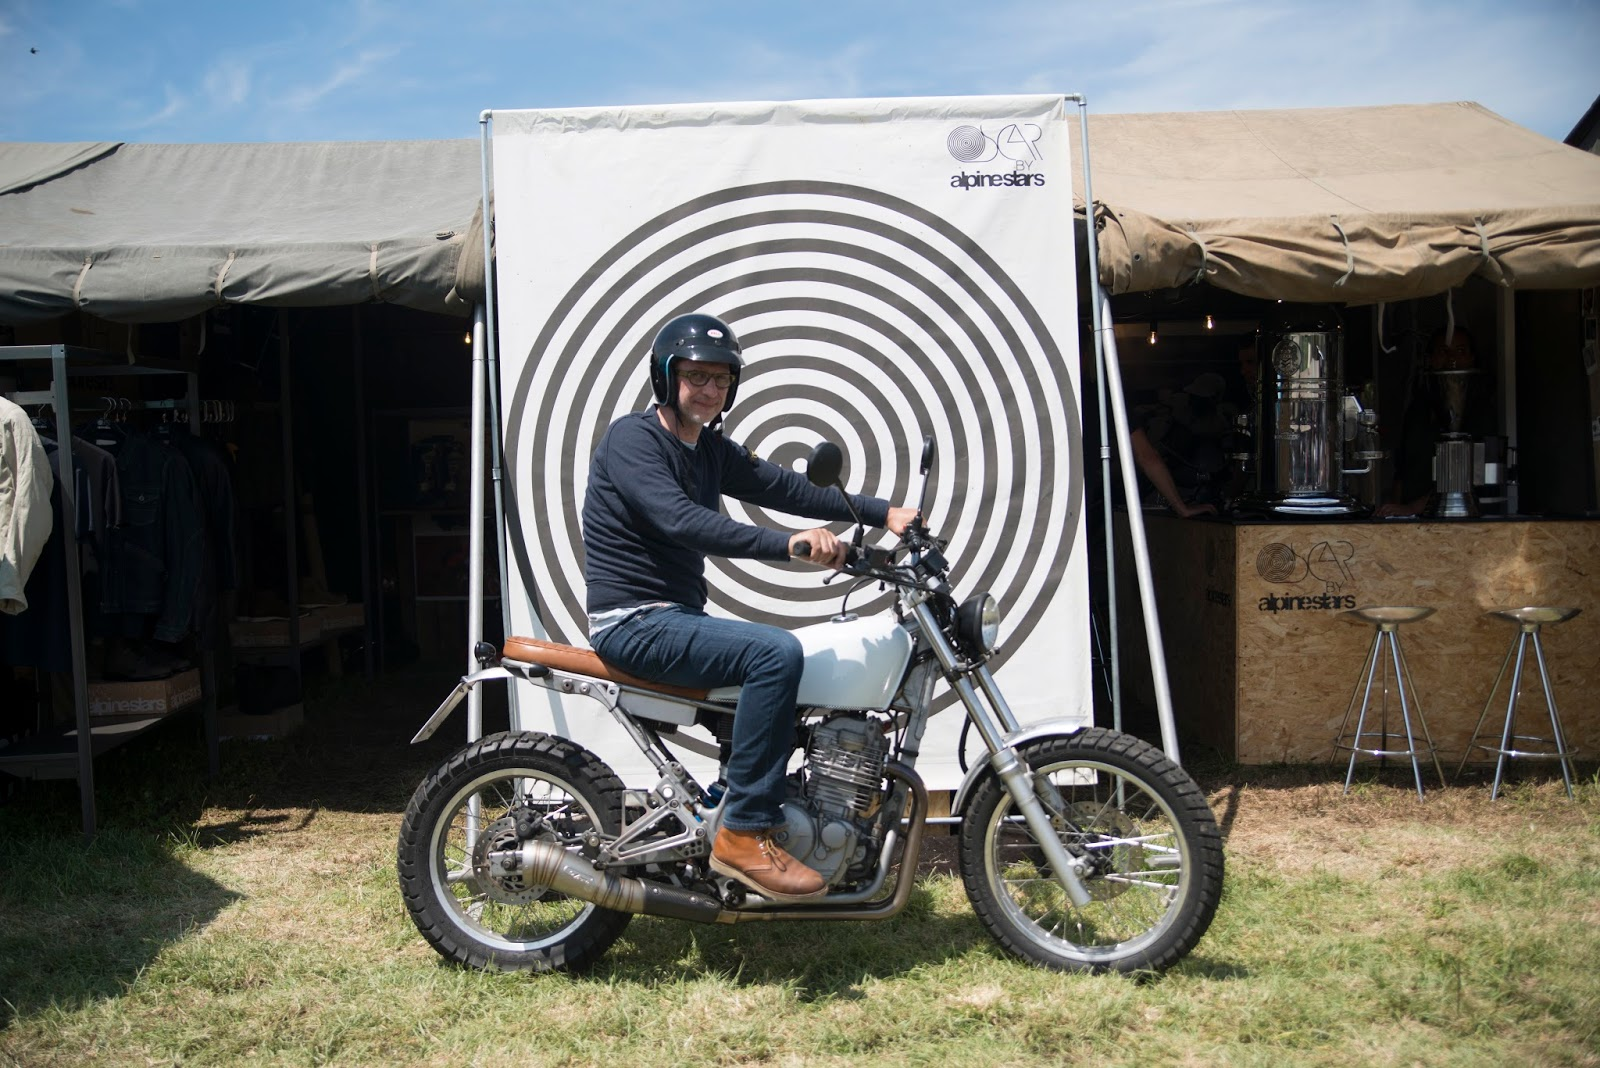 During the festival people brought their bike to the tent for a photo opp! & OSCAR by Alpinestars: WHEELS AND WAVES 2016 - IT JUST GETS BETTER ...